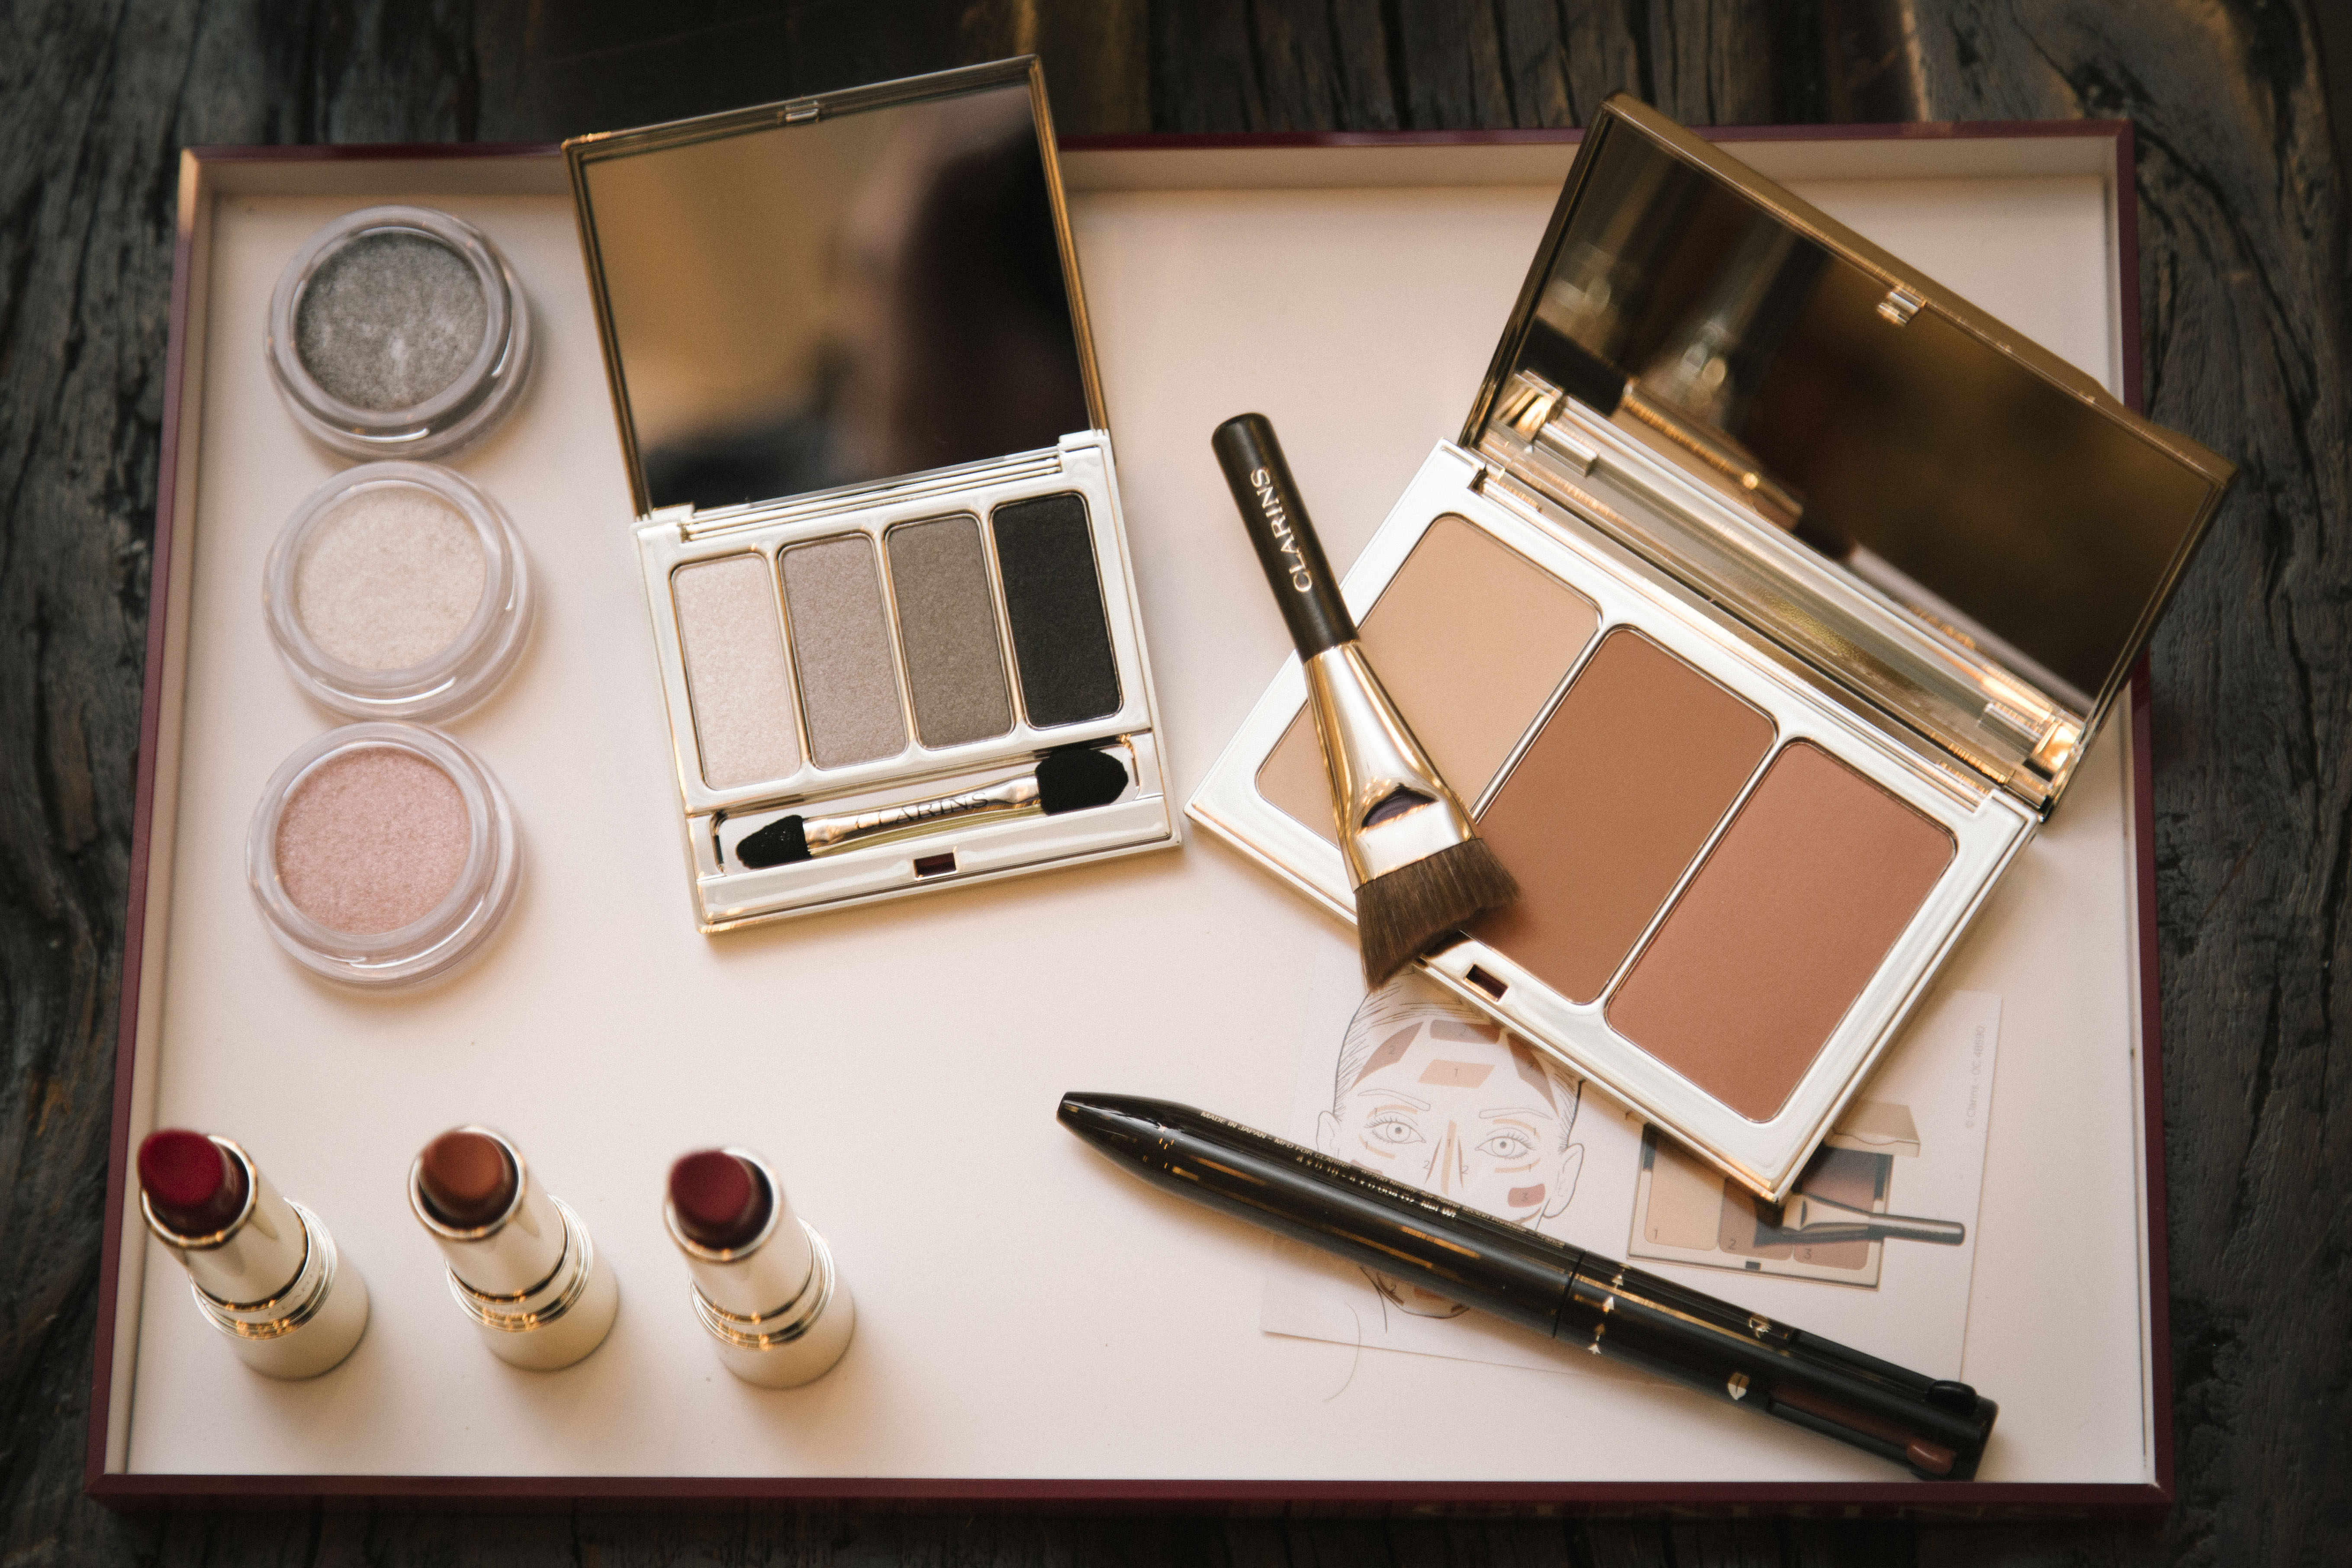 Perfect travel companions from Clarins for Spring 2017